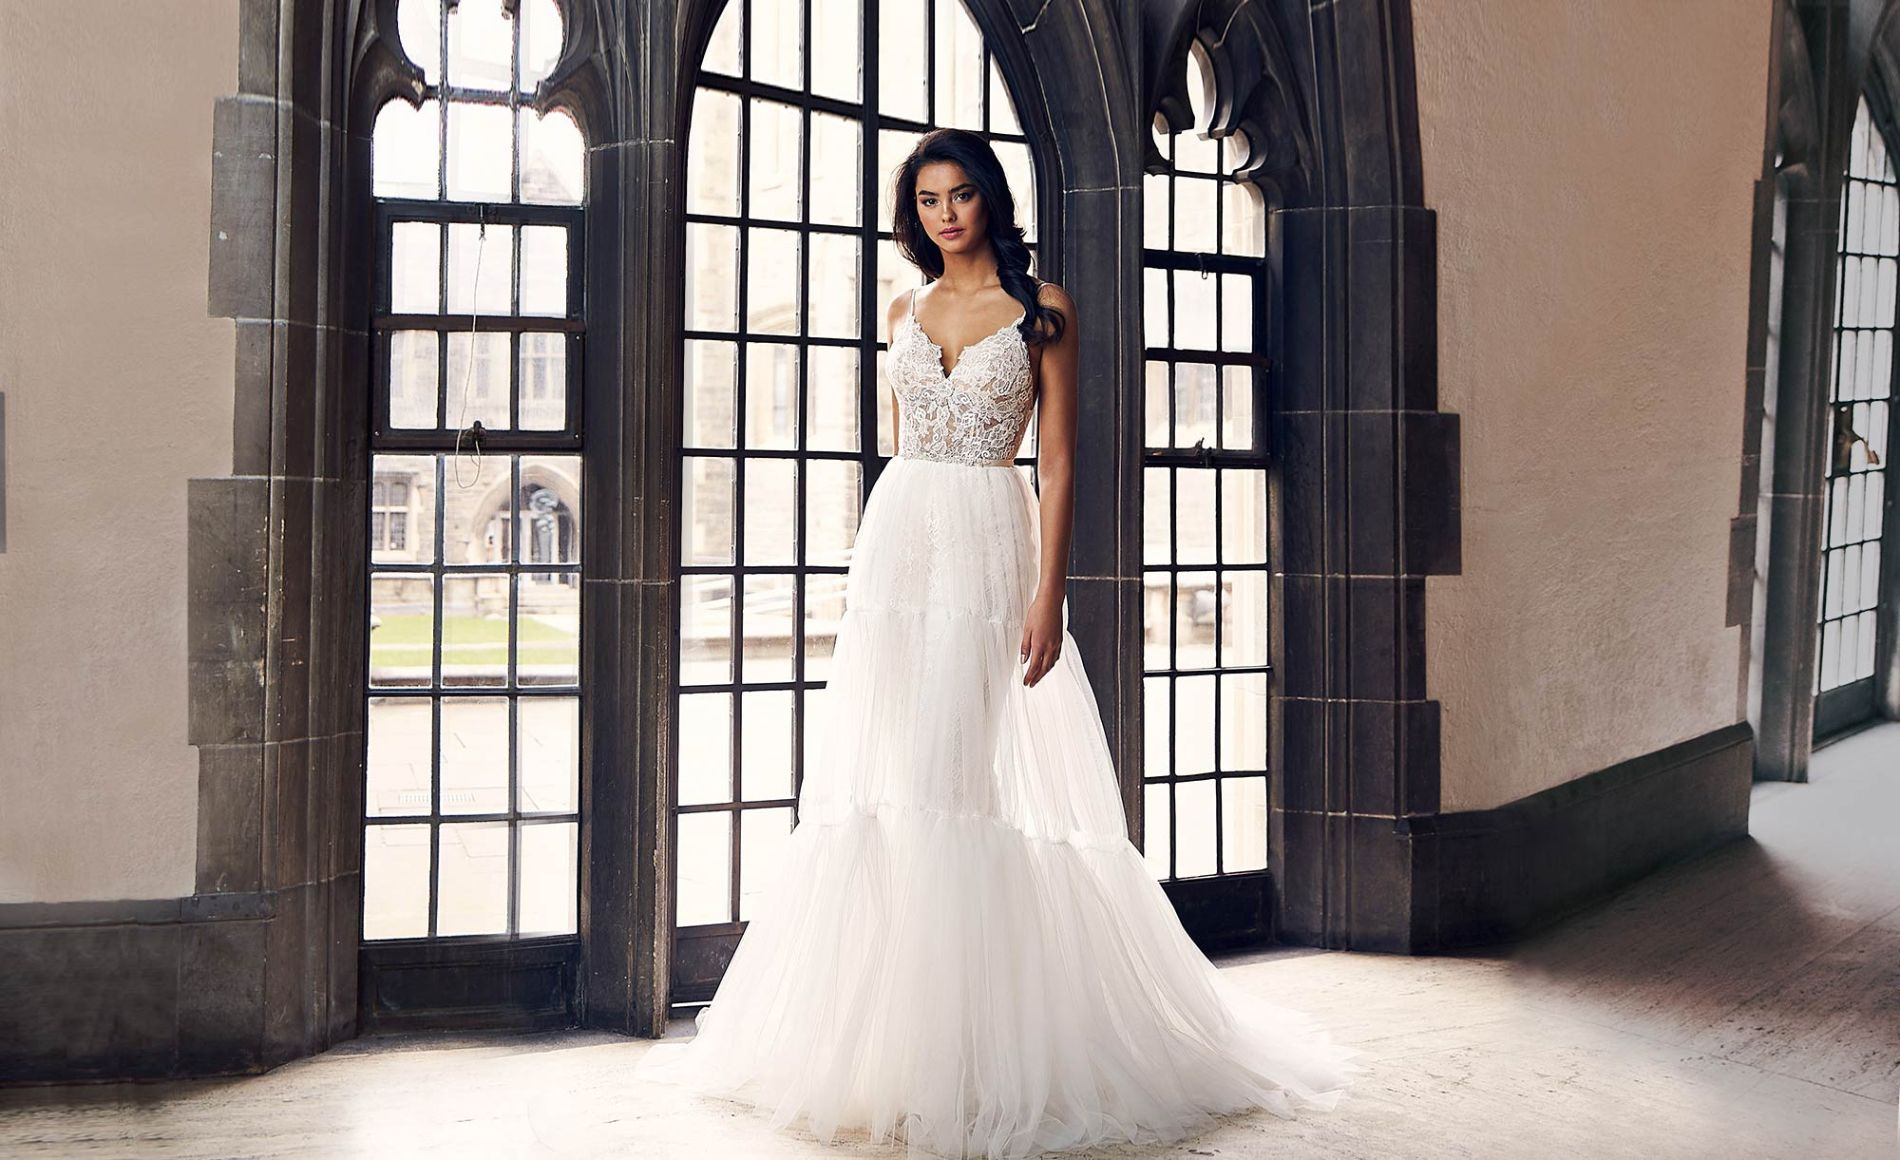 20 expert tips to finding your perfect wedding dress   A. Cherie